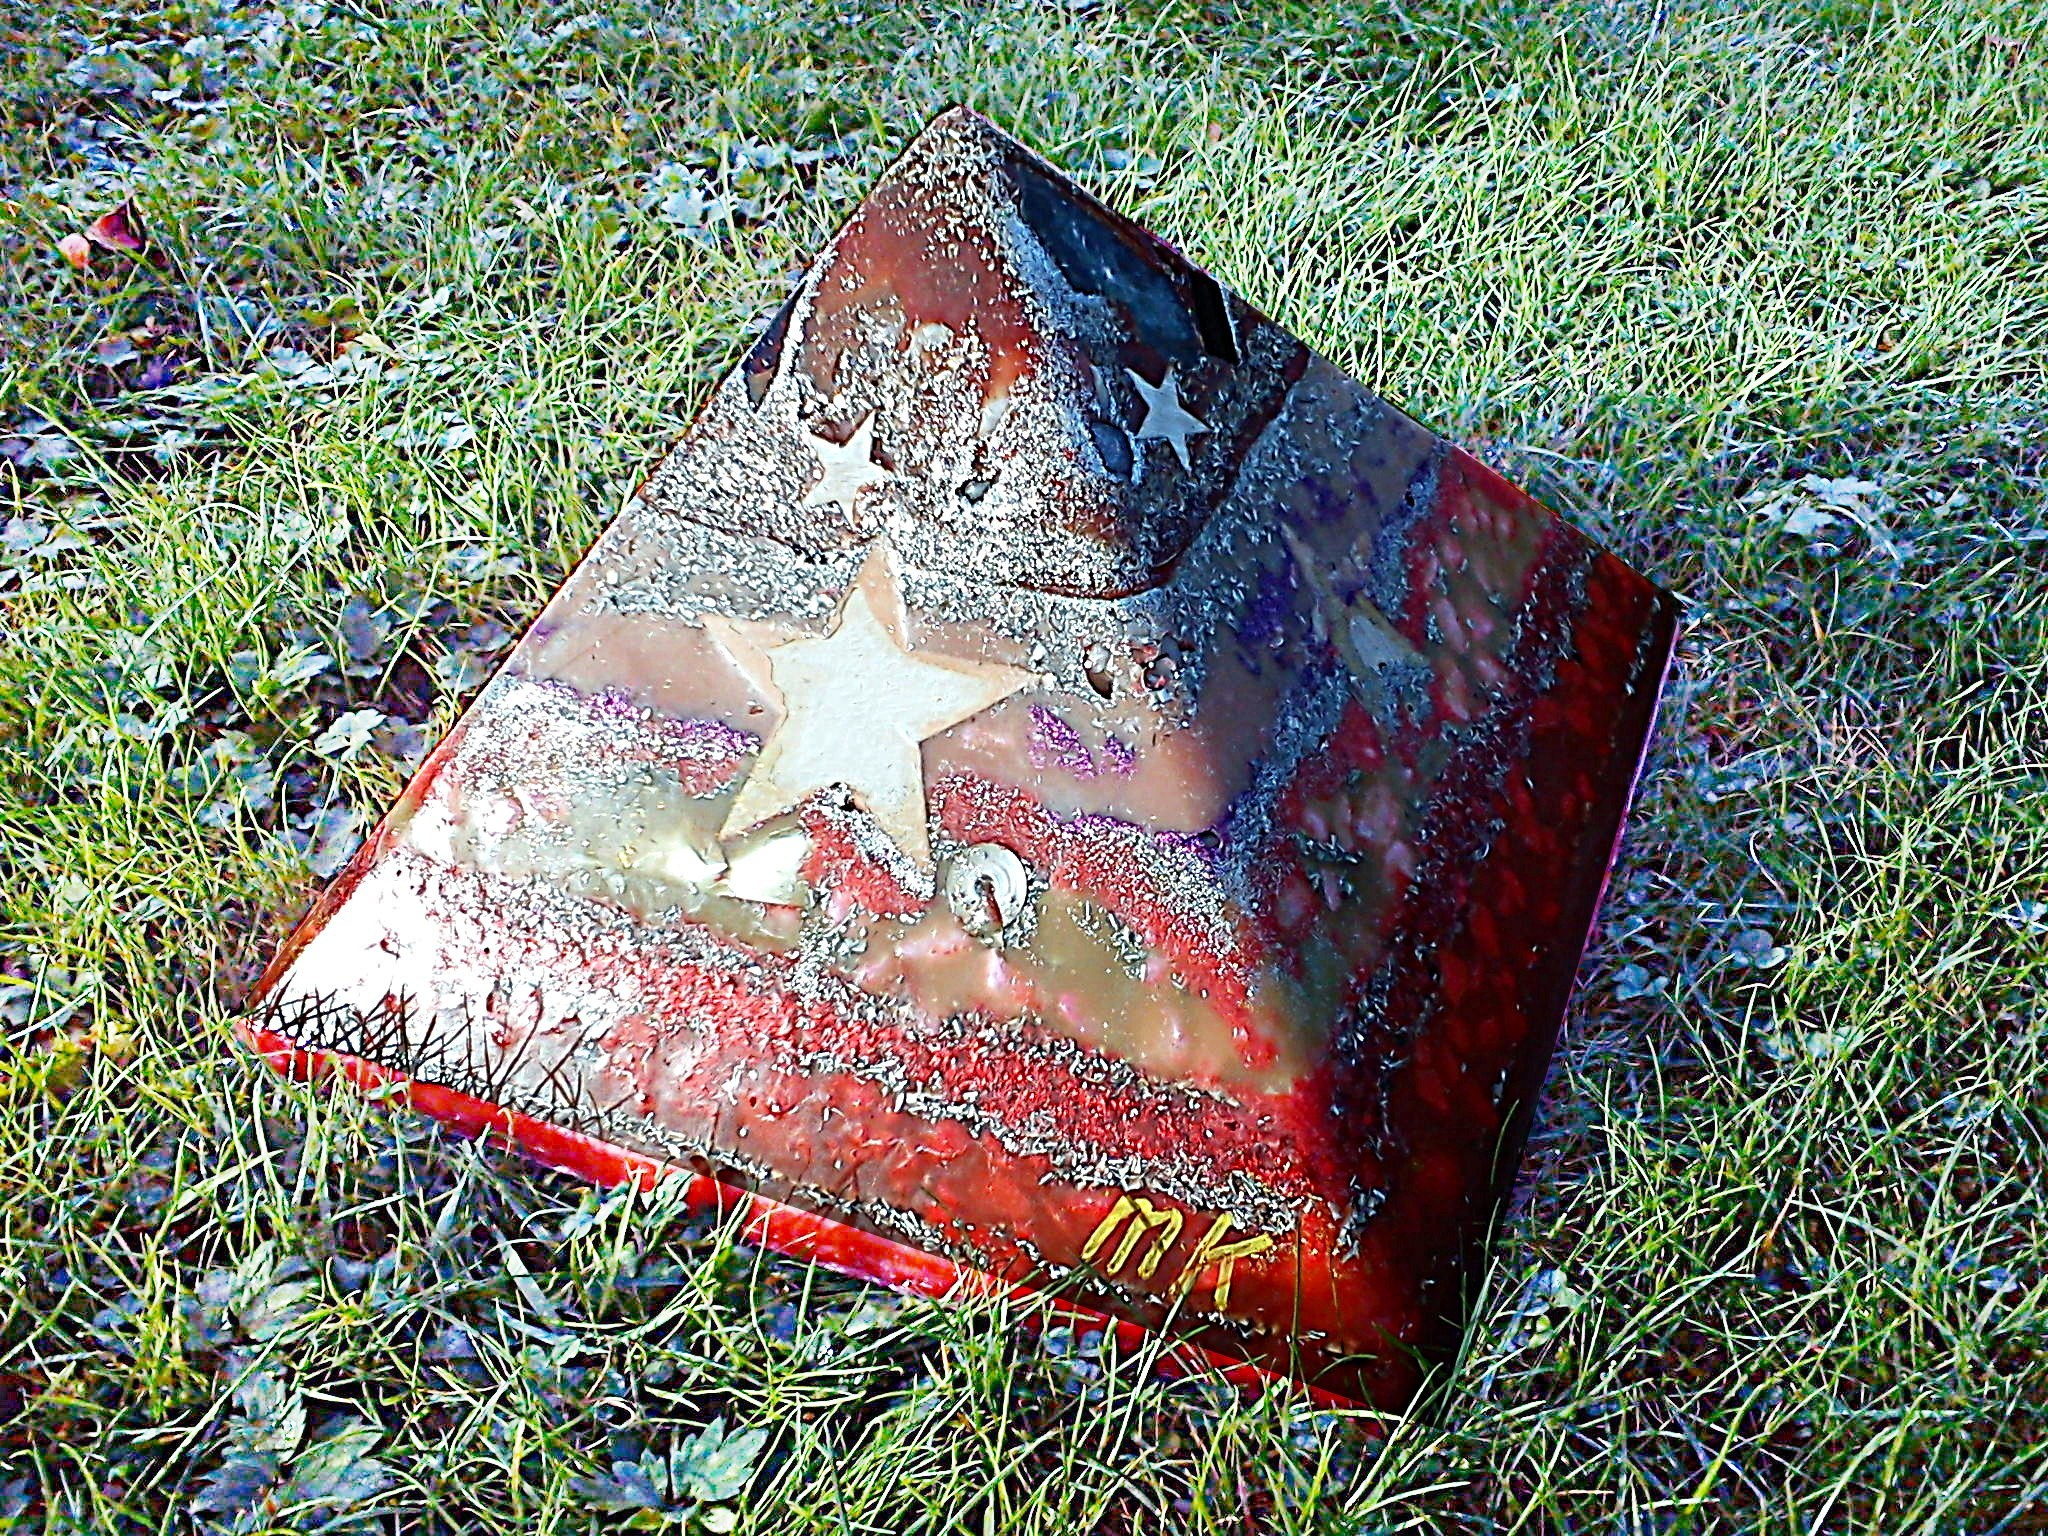 Pyramid Orgonite Star Hope, 24 cm side, bijenwas, mineralen, kristallen, metalen.